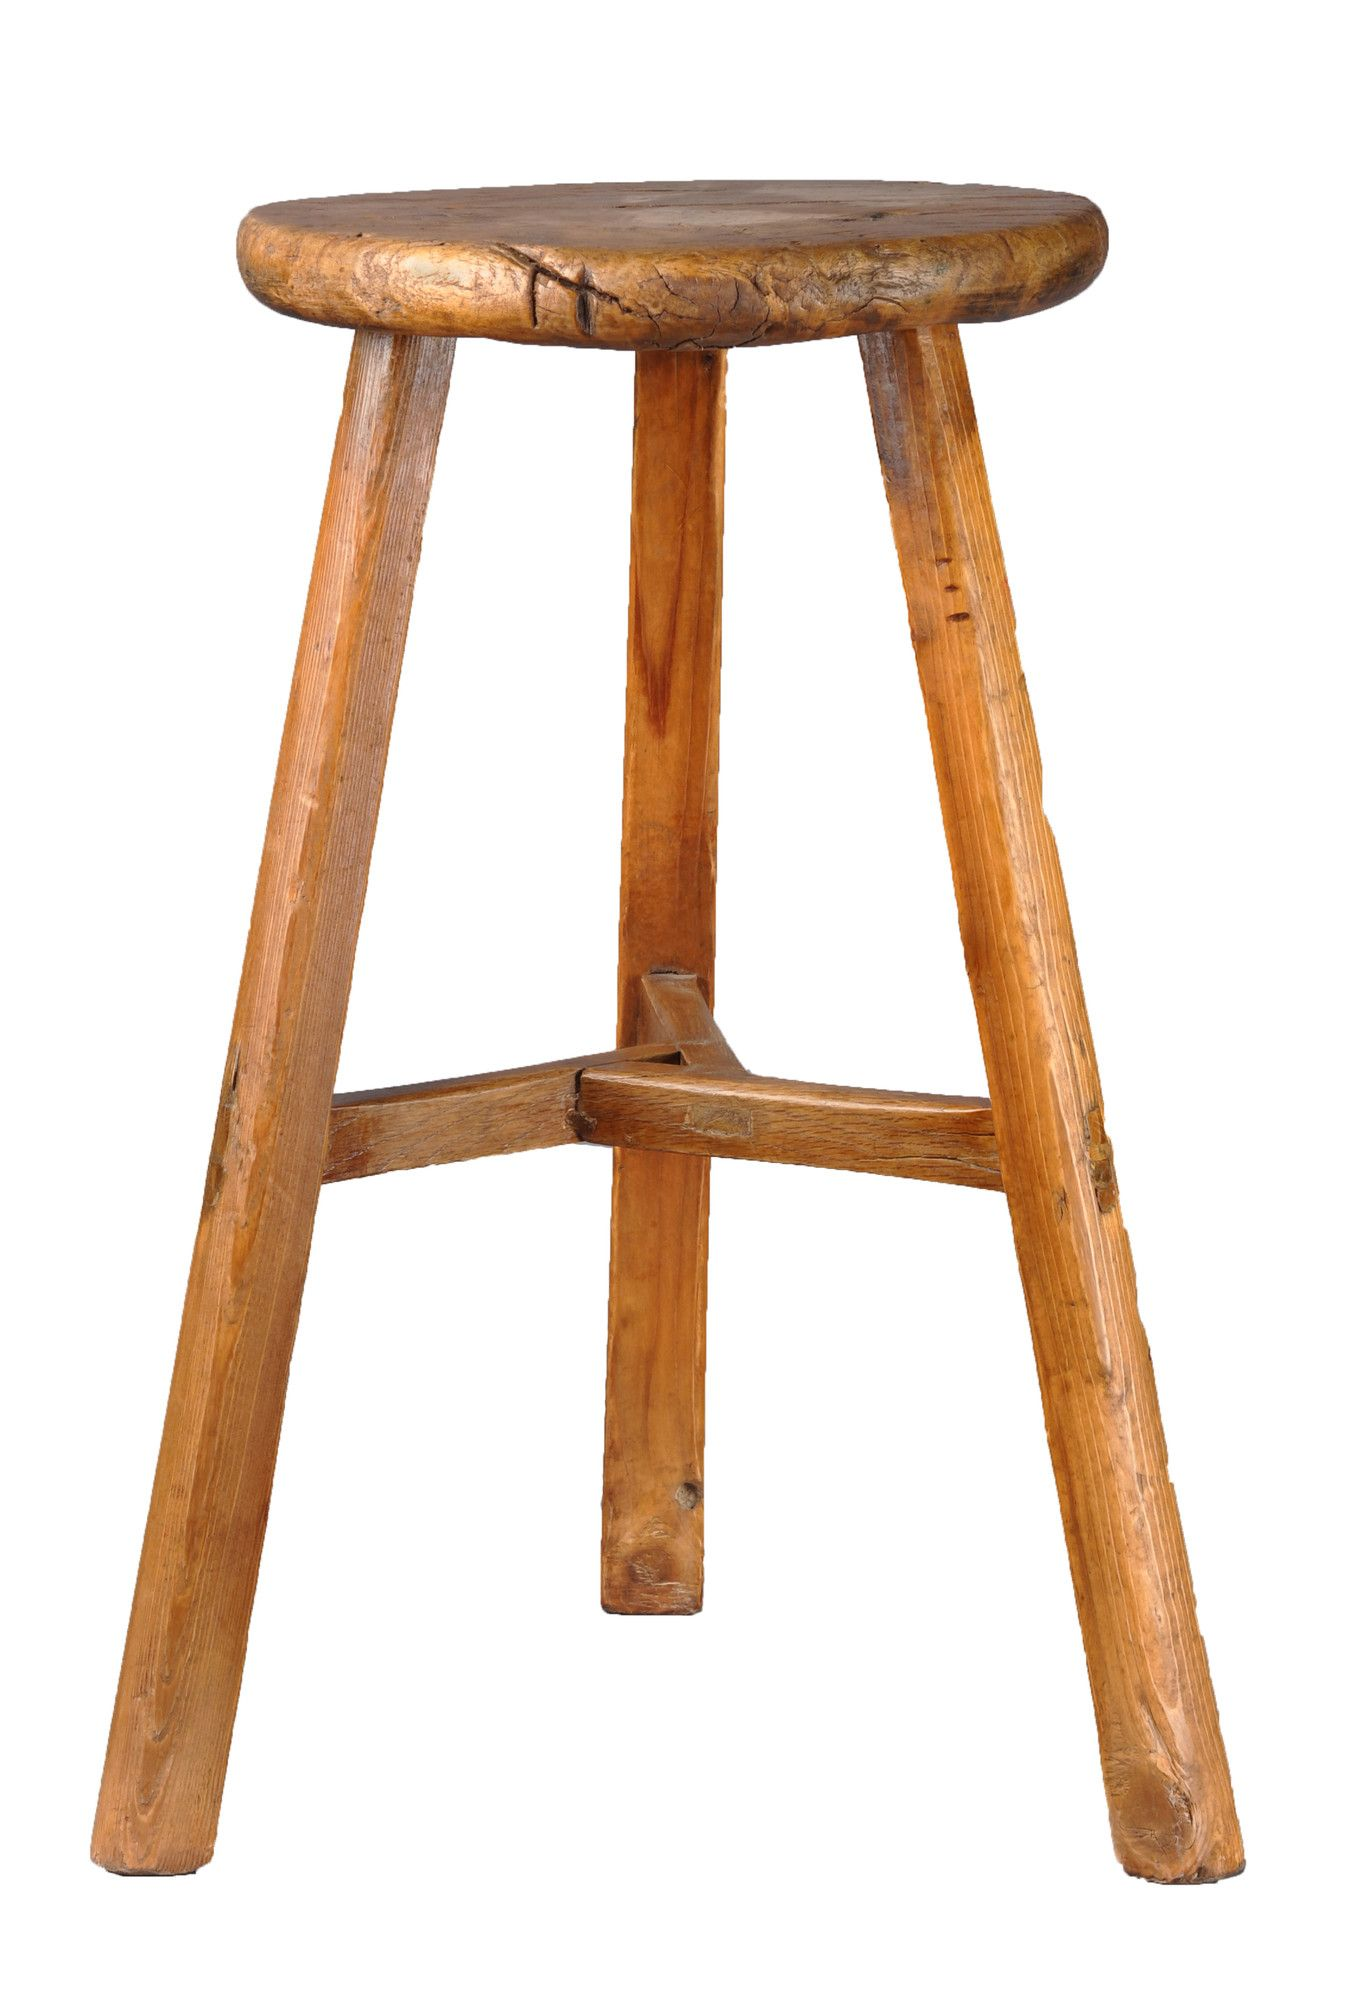 Antique Revival Farm Style 3 Legged Stool Wayfair